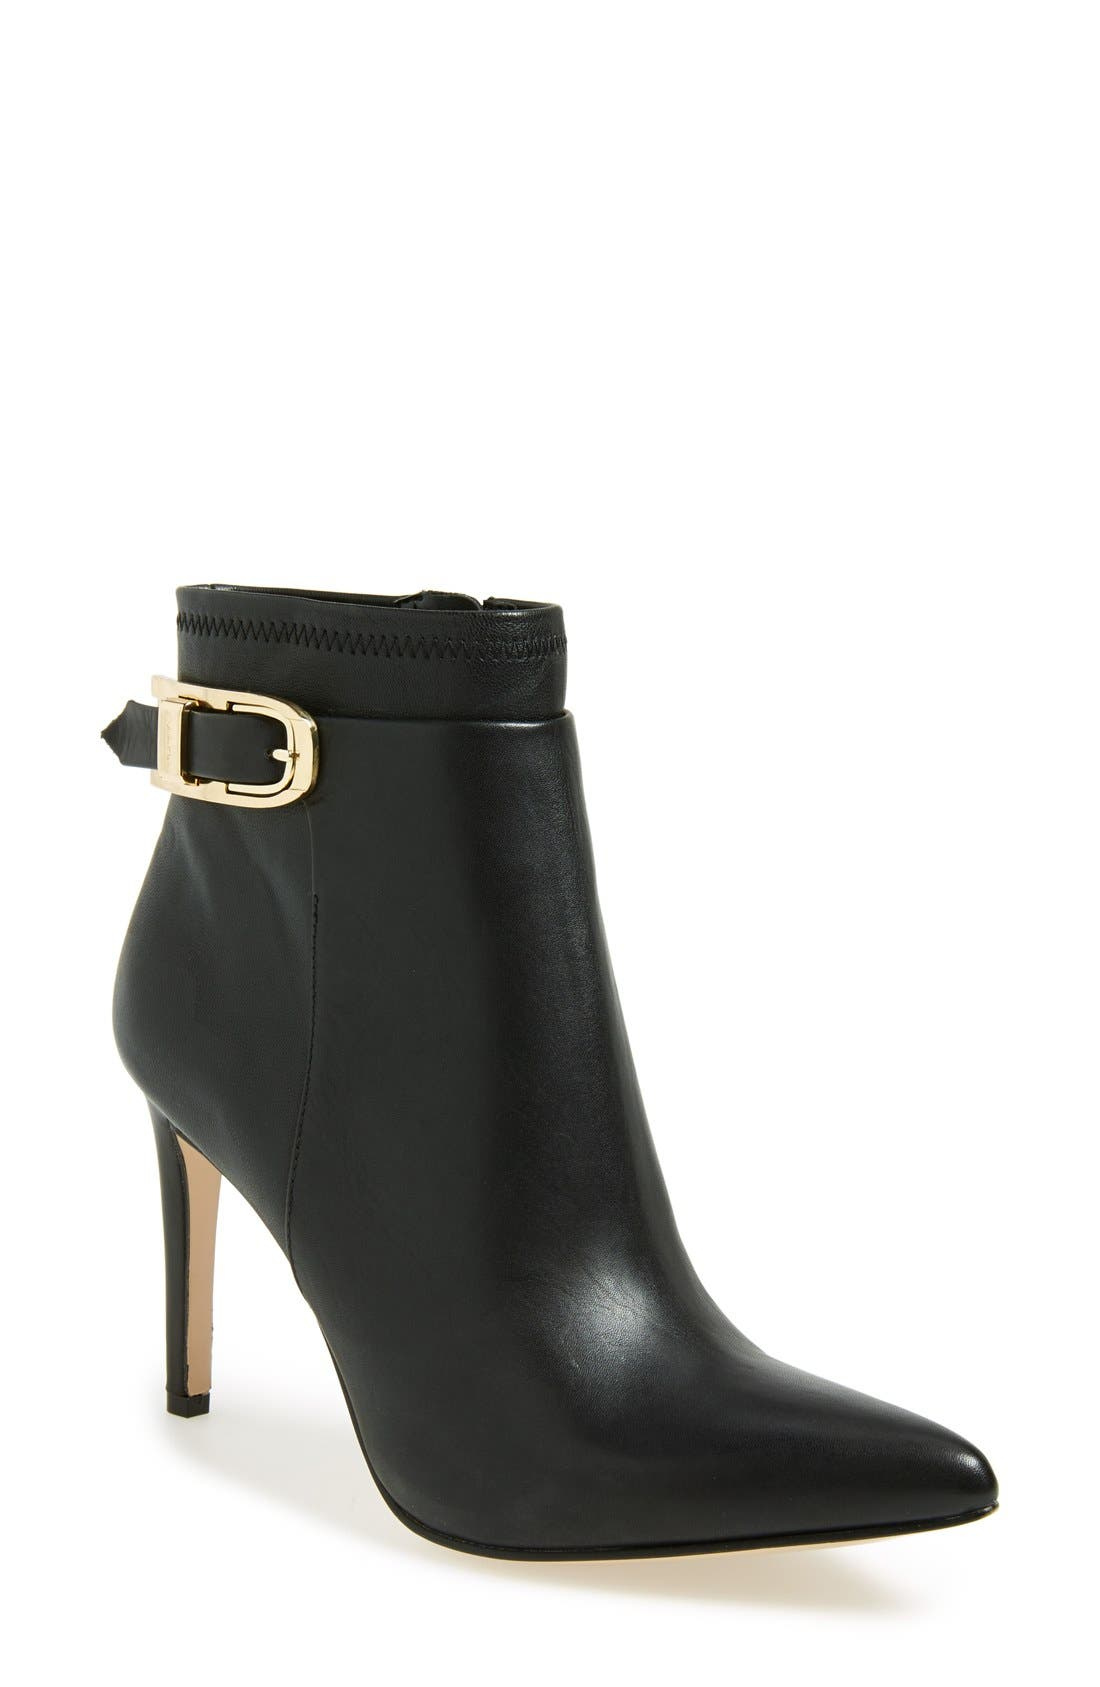 Alternate Image 1 Selected - Calvin Klein 'Cadie' Pointy Toe Bootie (Women)